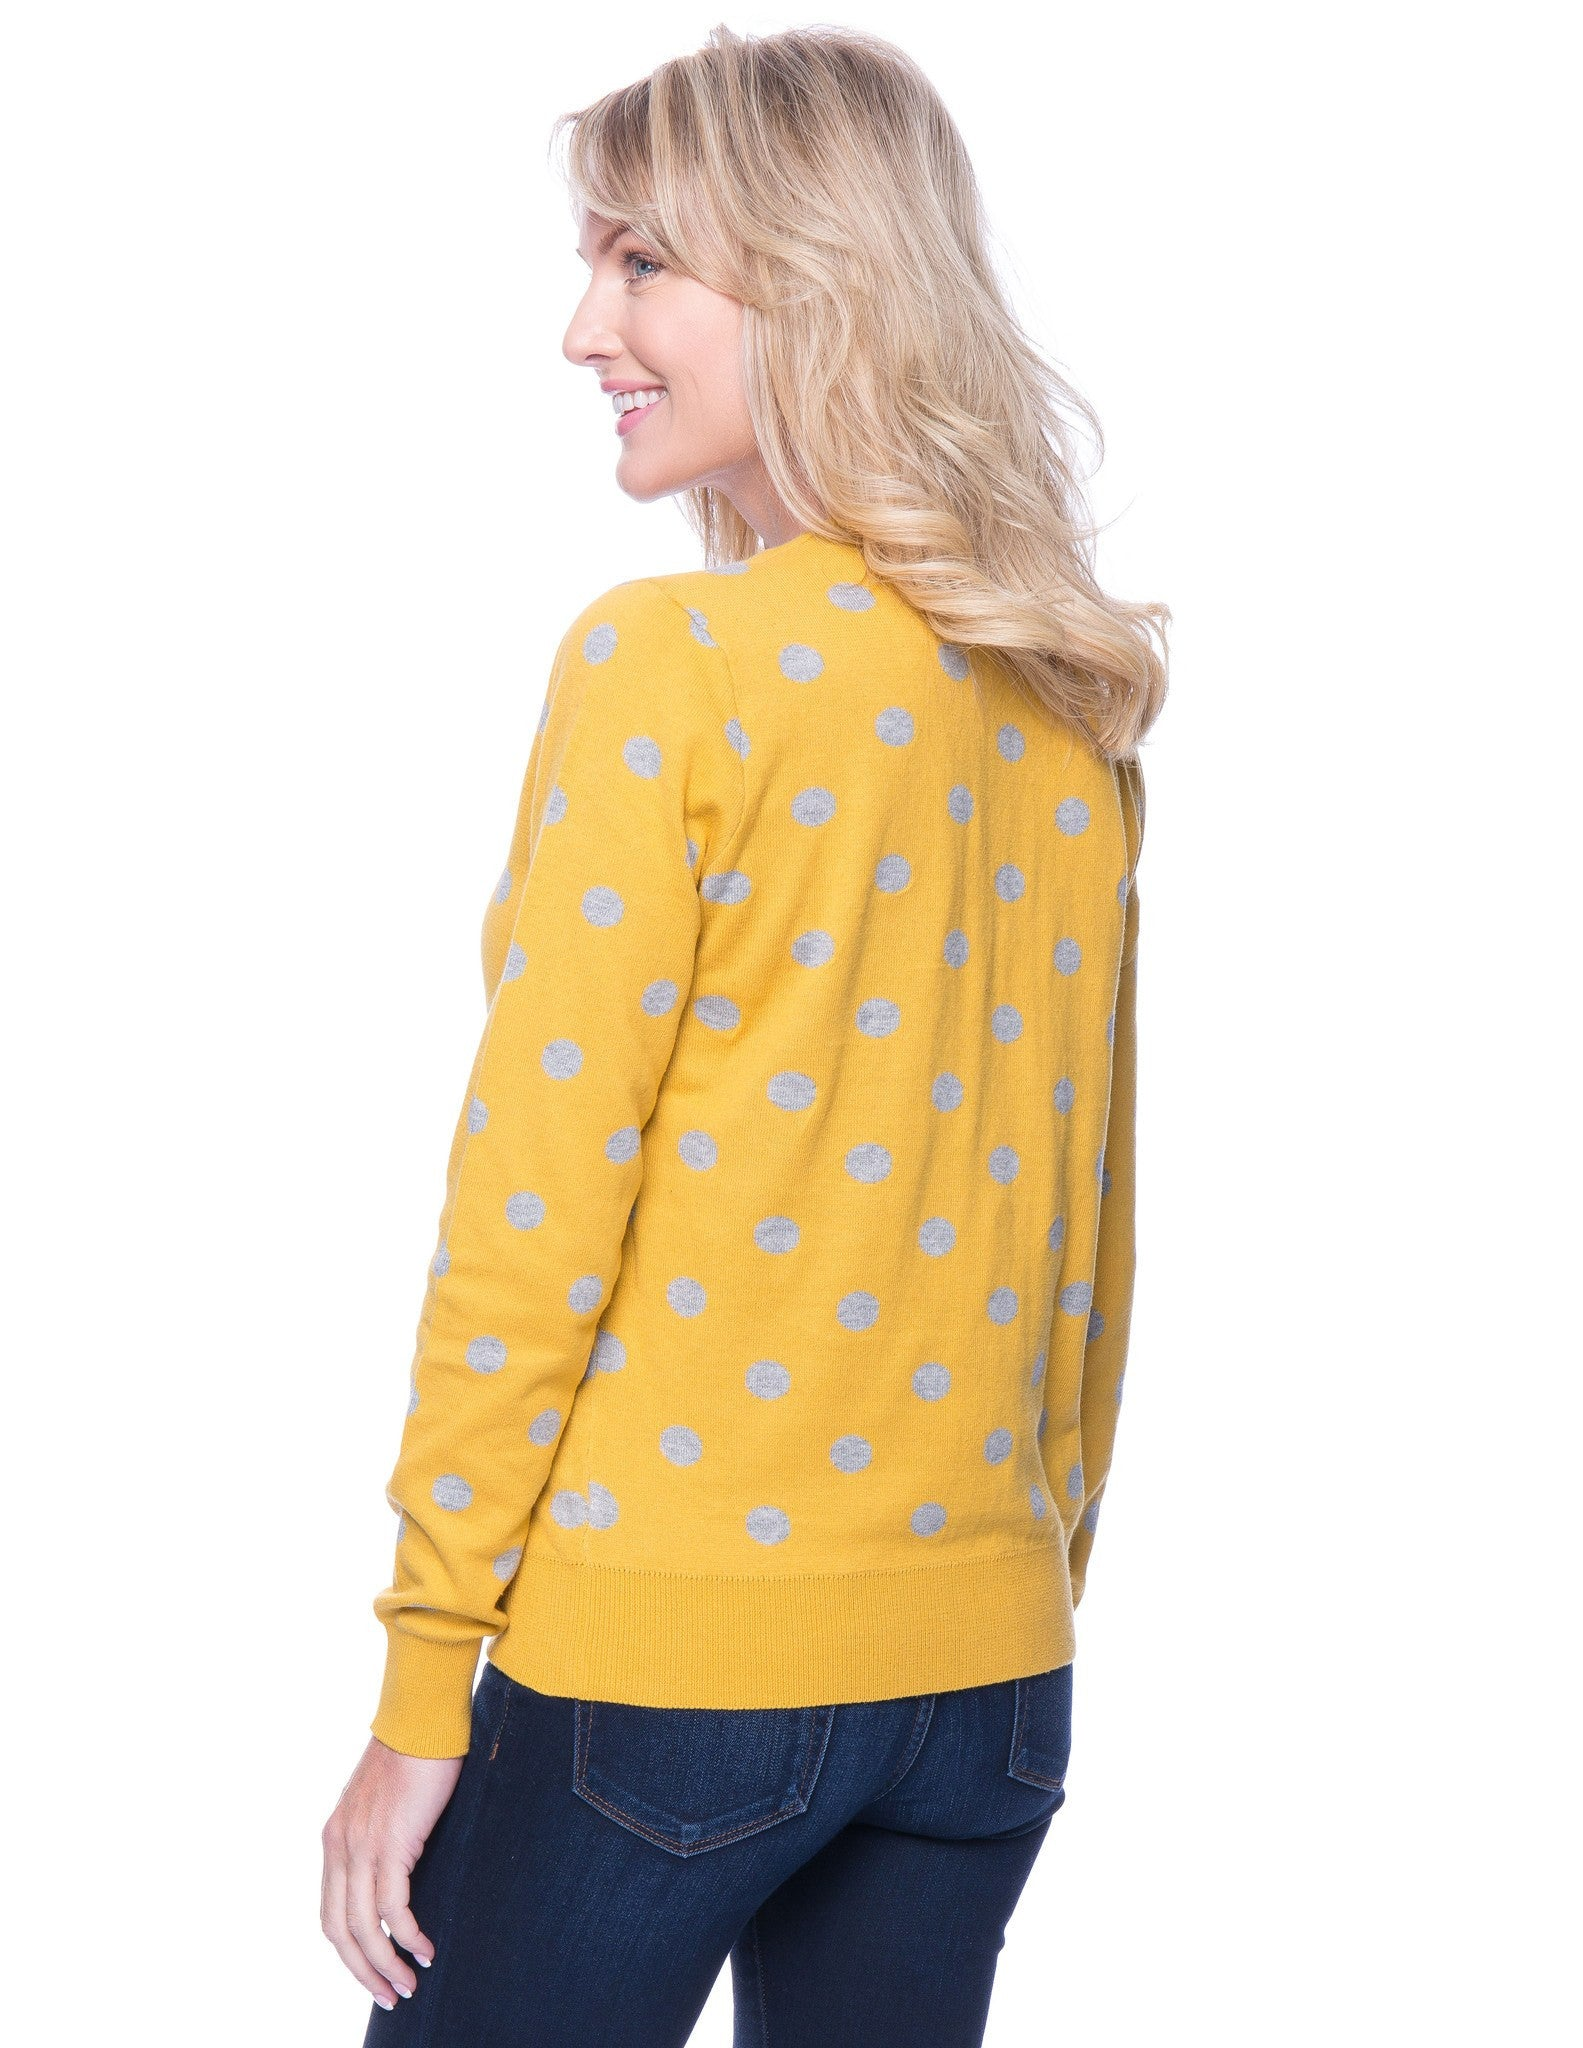 Tocco Reale Women's Premium Cotton Crew Neck Sweater - Polka Dots Mustard/Heather Grey